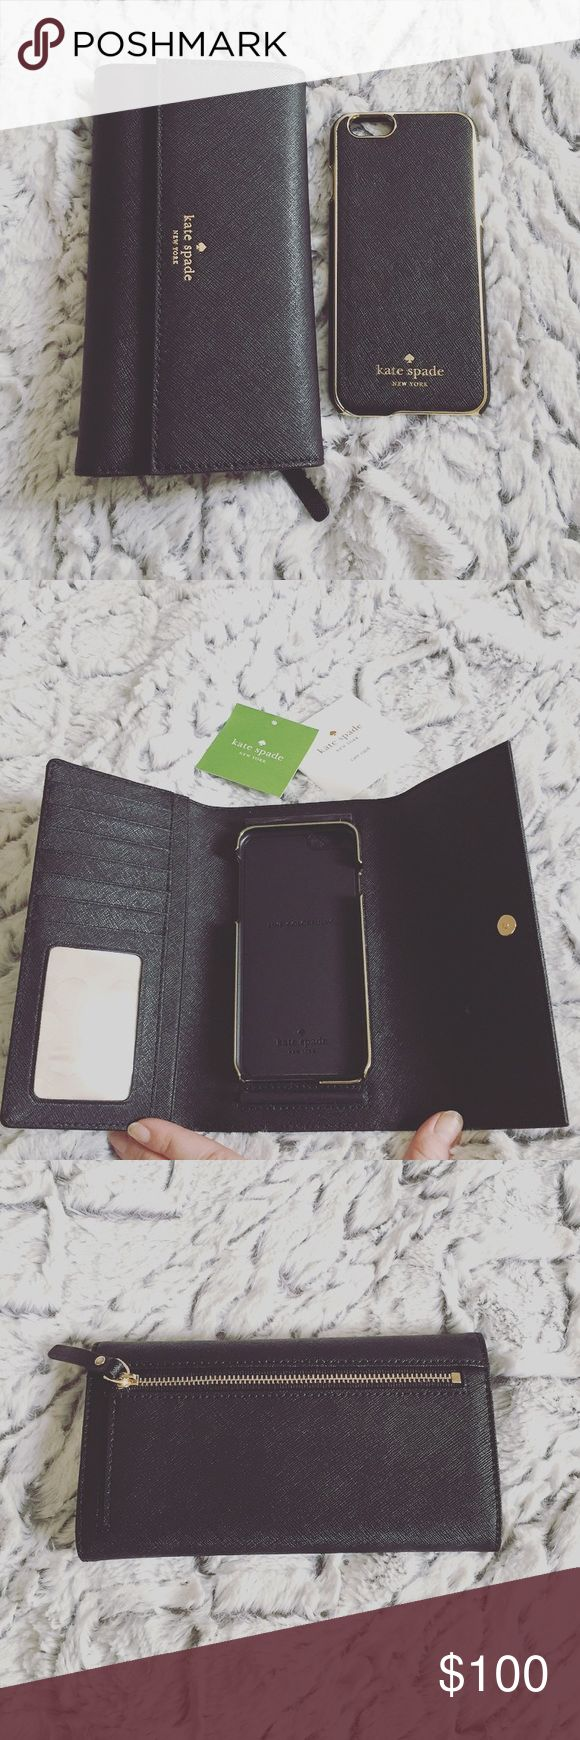 """Kate Spade Case & Wallet Saffiano leather. Magnetic snap flap closure. Exterior zip pocket. 6 card slots & 2 currency compartments. Signature polka dot lining. Includes matching iPhone 6/6s case that attaches magnetically to wallet. 7"""" W x 4"""" H x 1""""D. Perfect condition! No trades, price is FIRM. kate spade Bags Wallets"""